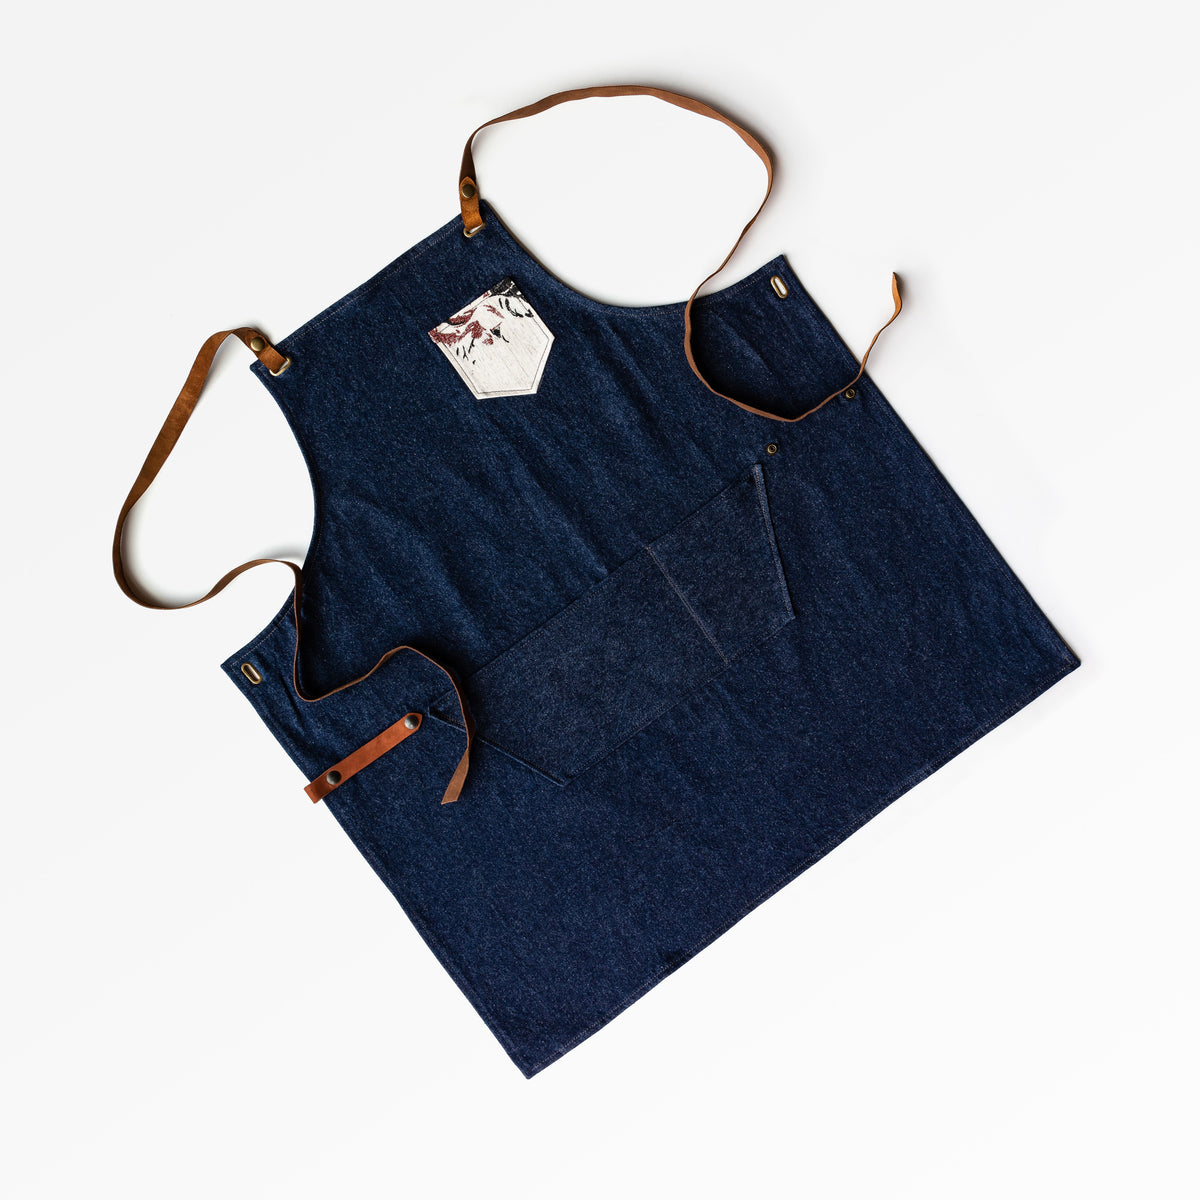 Floral Pattern - Handmade Sturdy Workshop & Gardening Apron in Denim & Leather - Sold by Chic & Basta